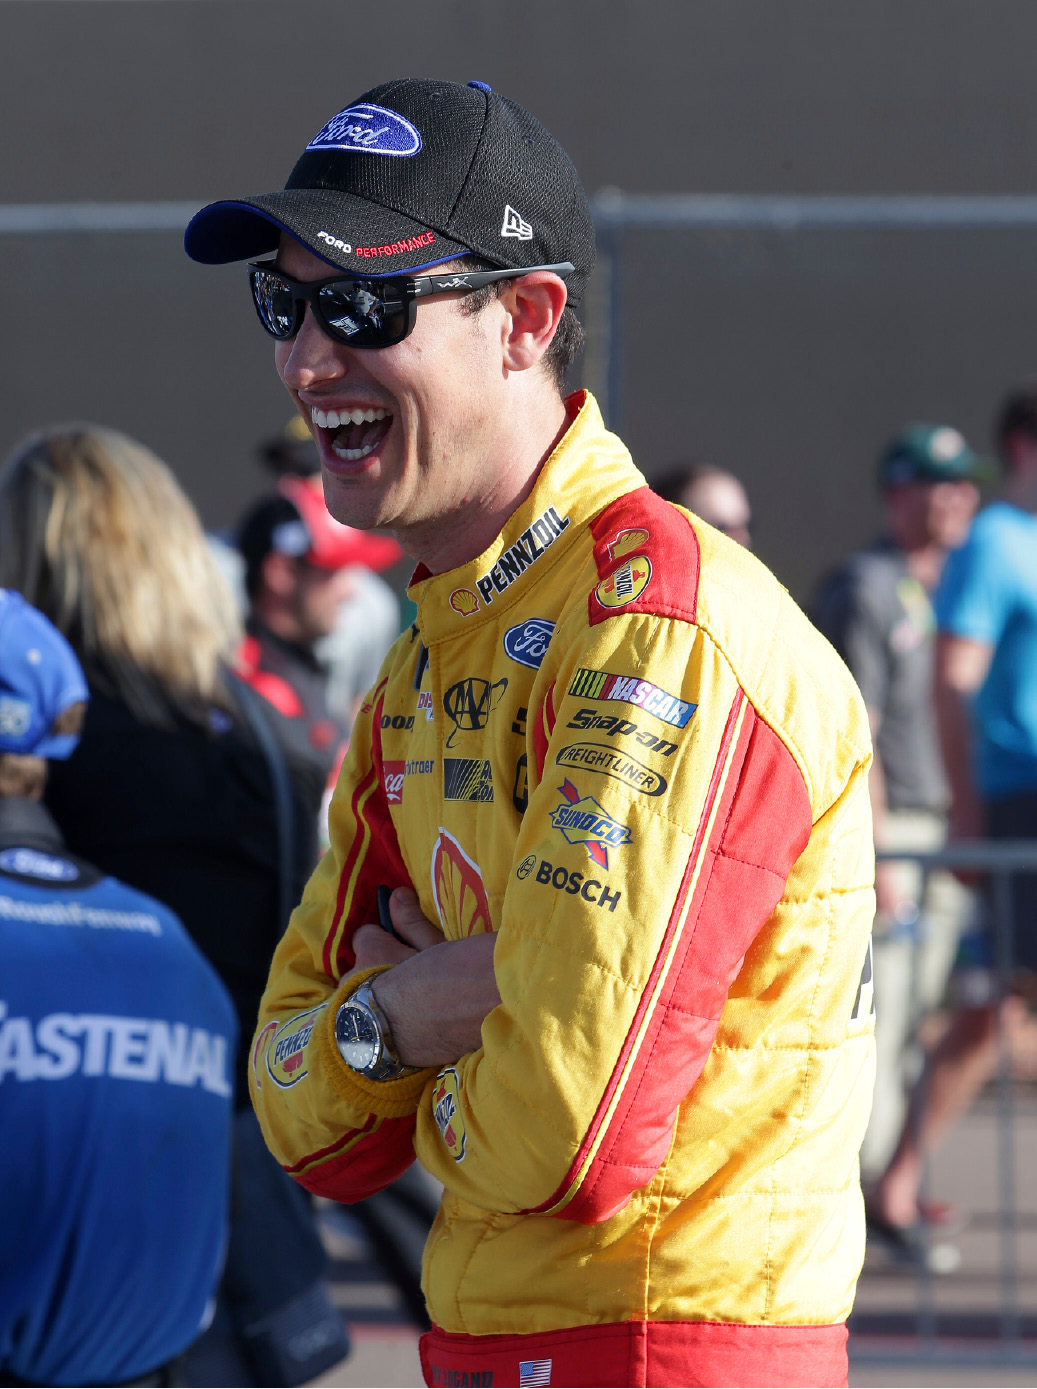 Middletown's Joey Logano waits Friday to qualify for today's NASCAR Cup Series race in Avondale, Ariz. | Associated Press